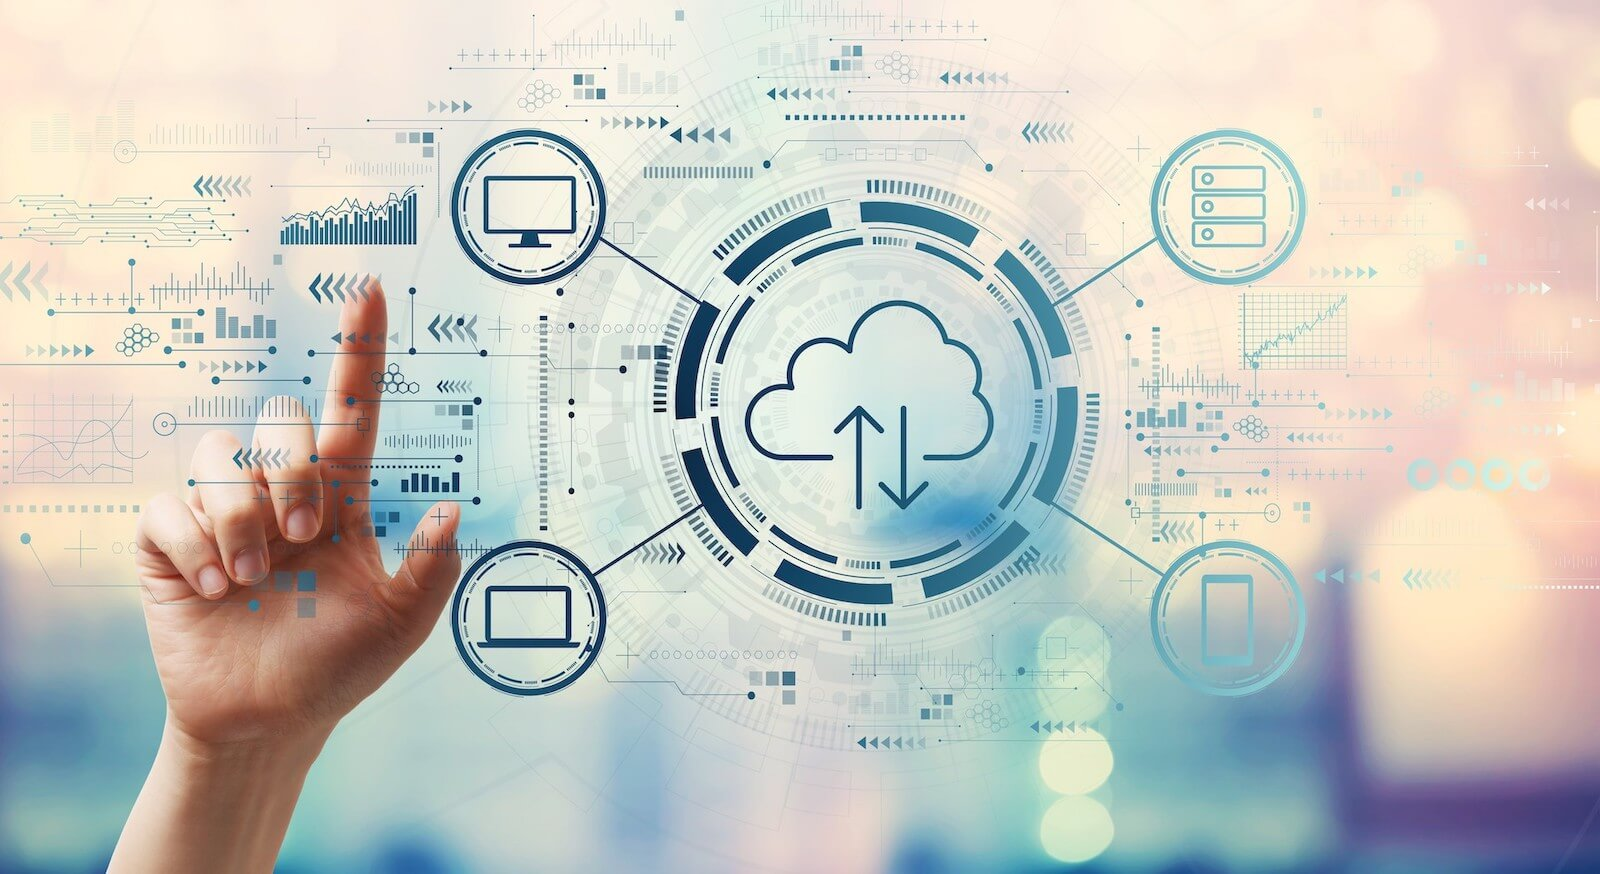 Cloud computing with devices and workloads